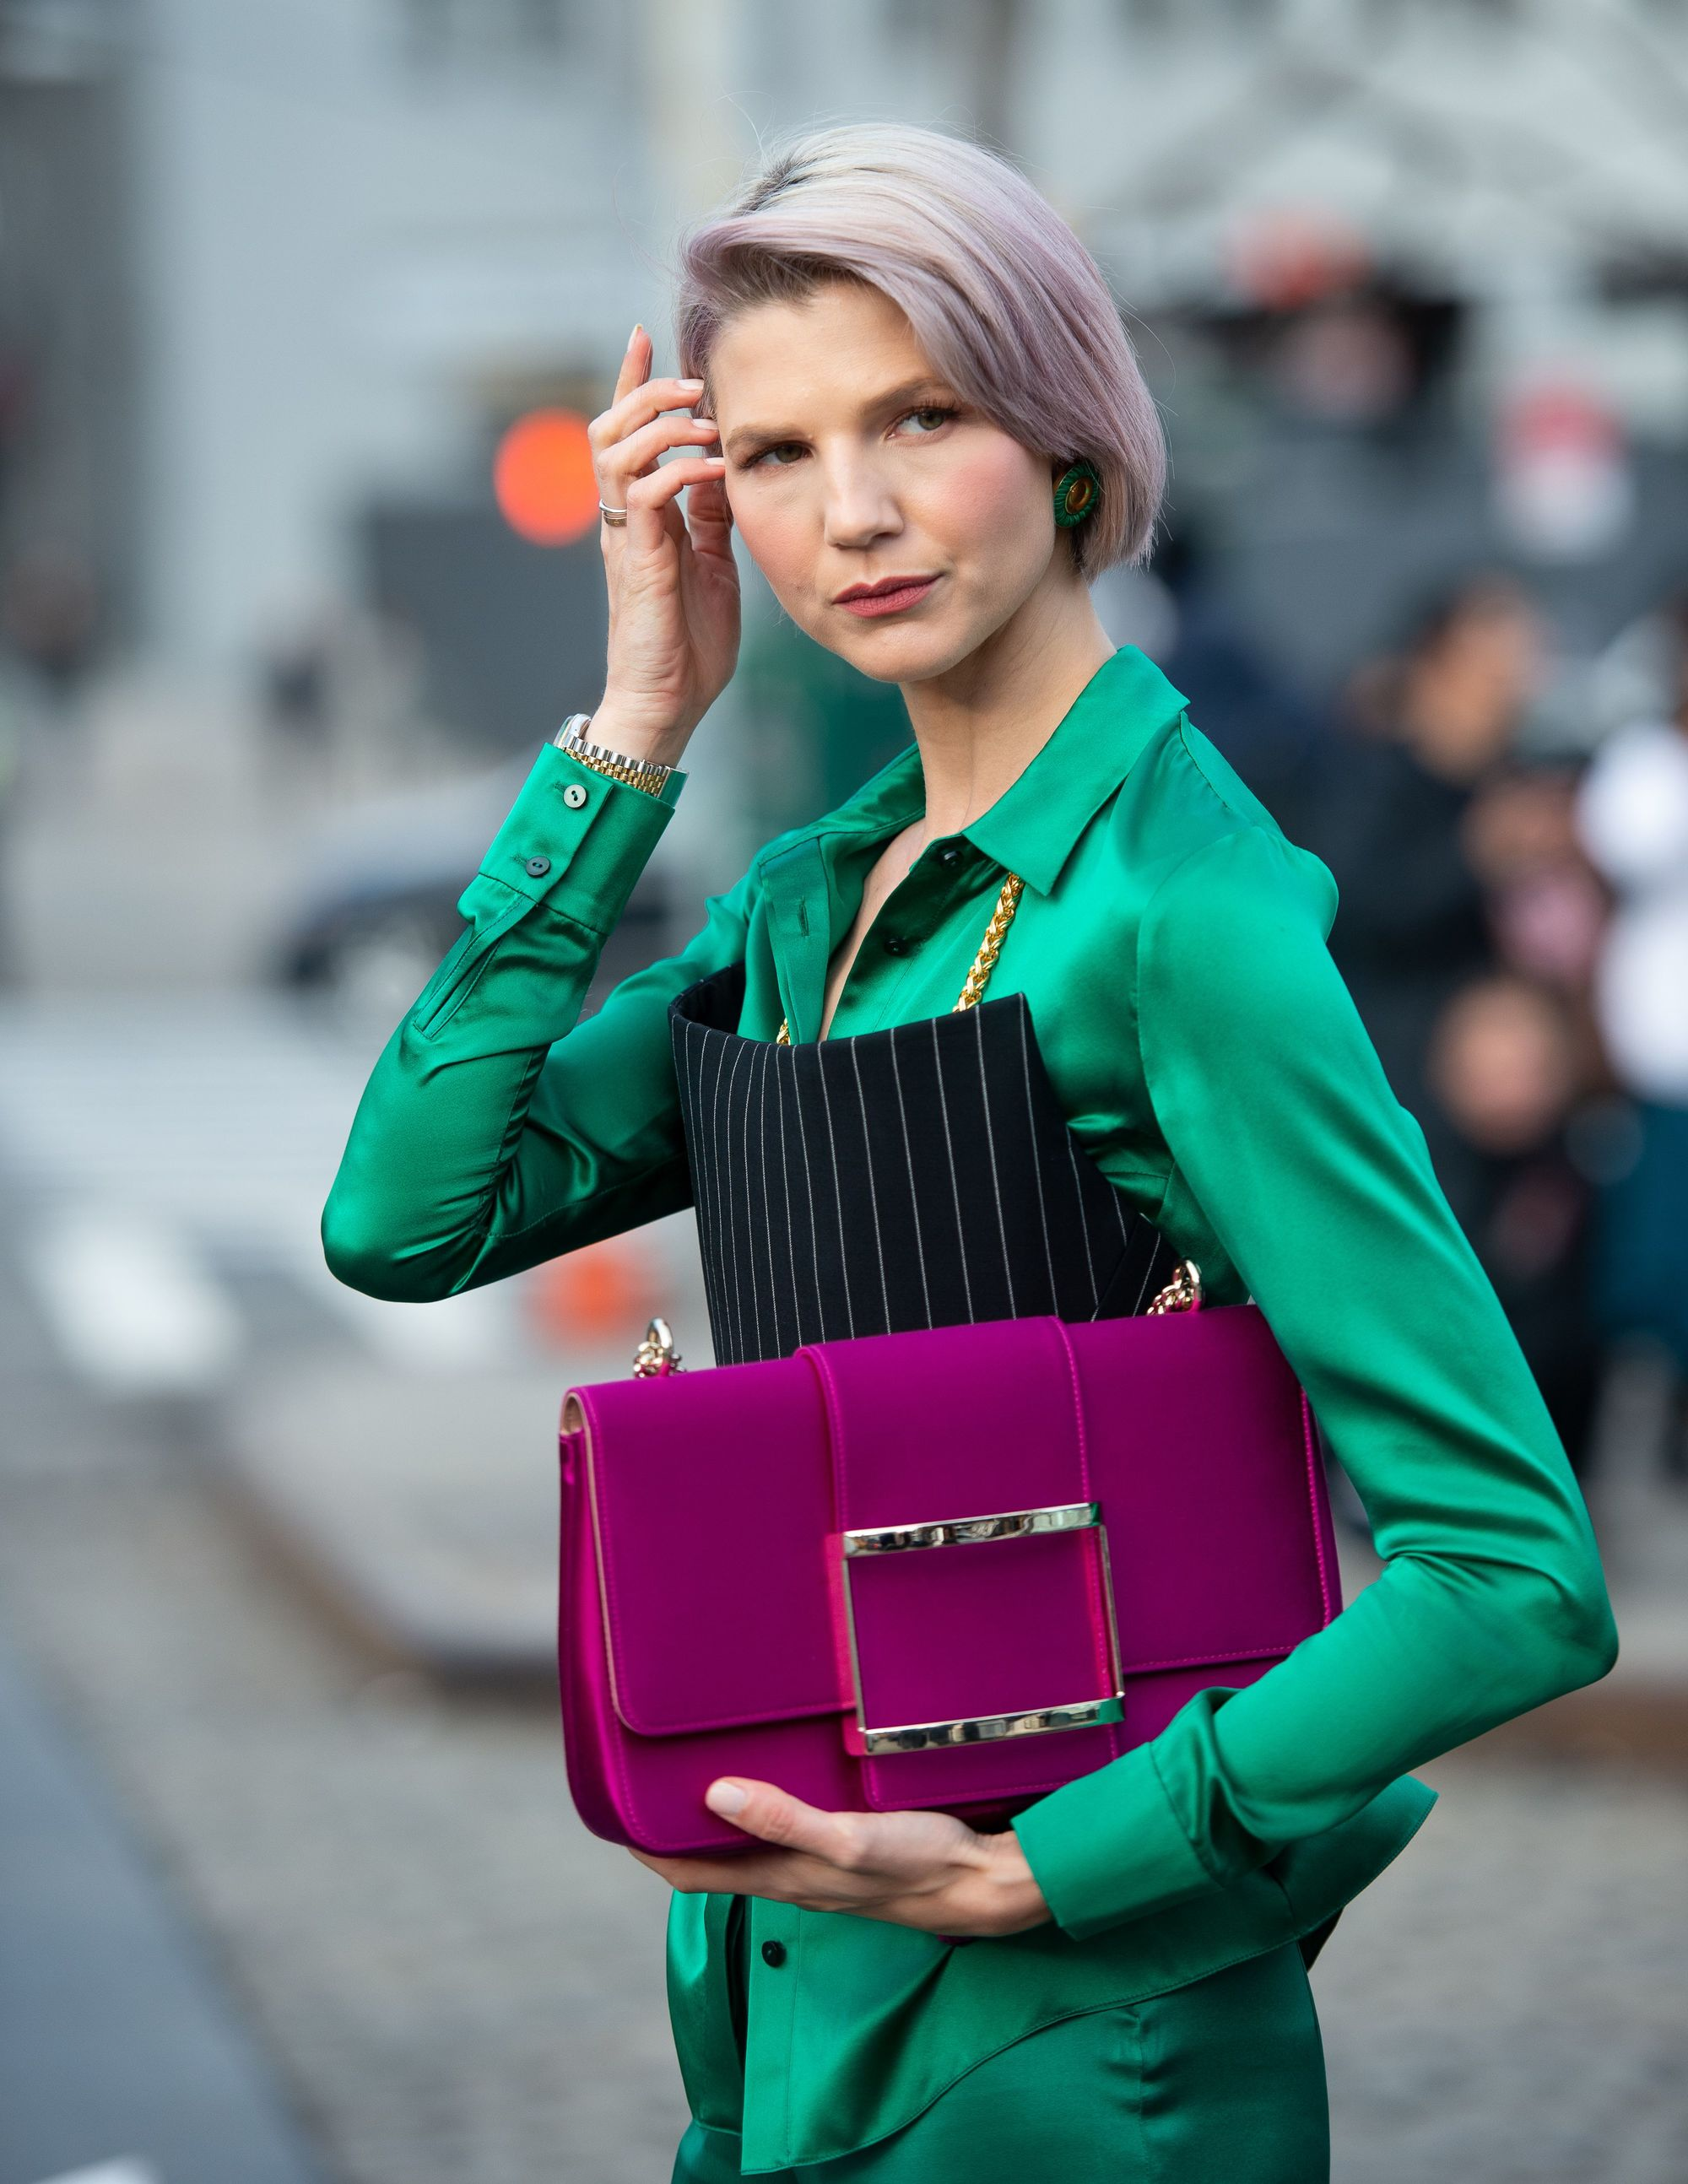 Woman with chin length ash blonde bob with lilac wash, wearing an emerald green suit and holding a purple bag outside